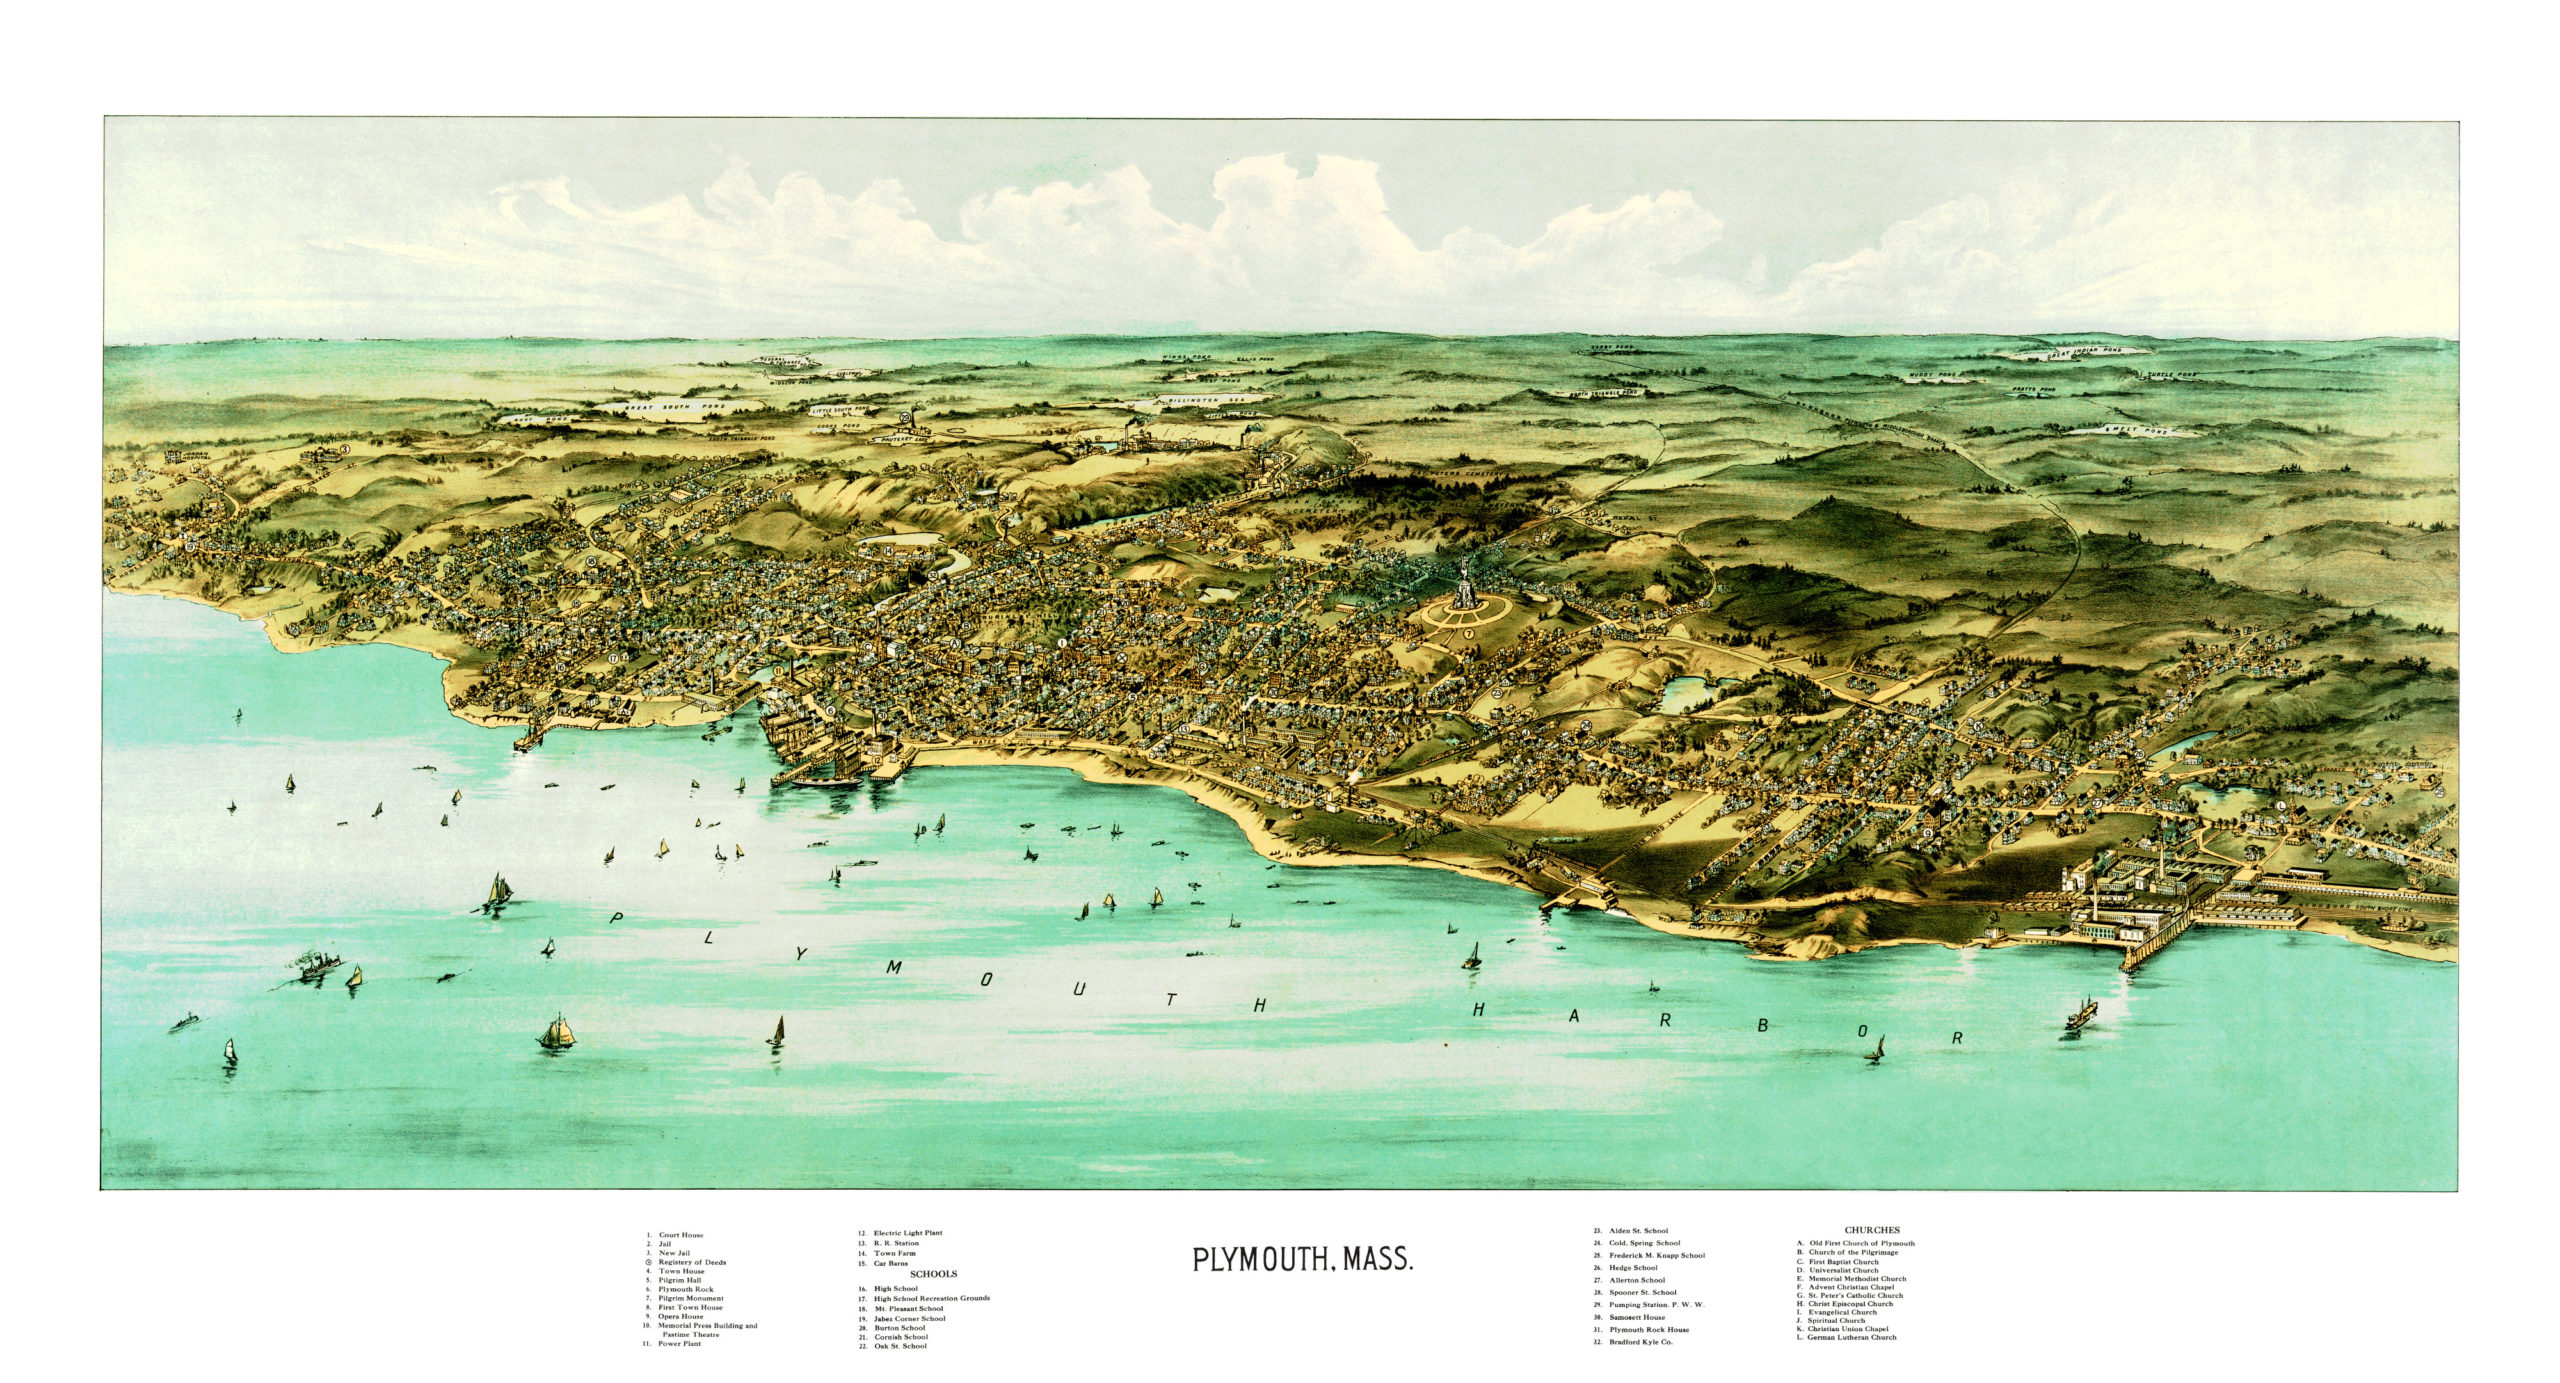 Vintage Map Of Plymouth Massachusetts From 1910 Knowol